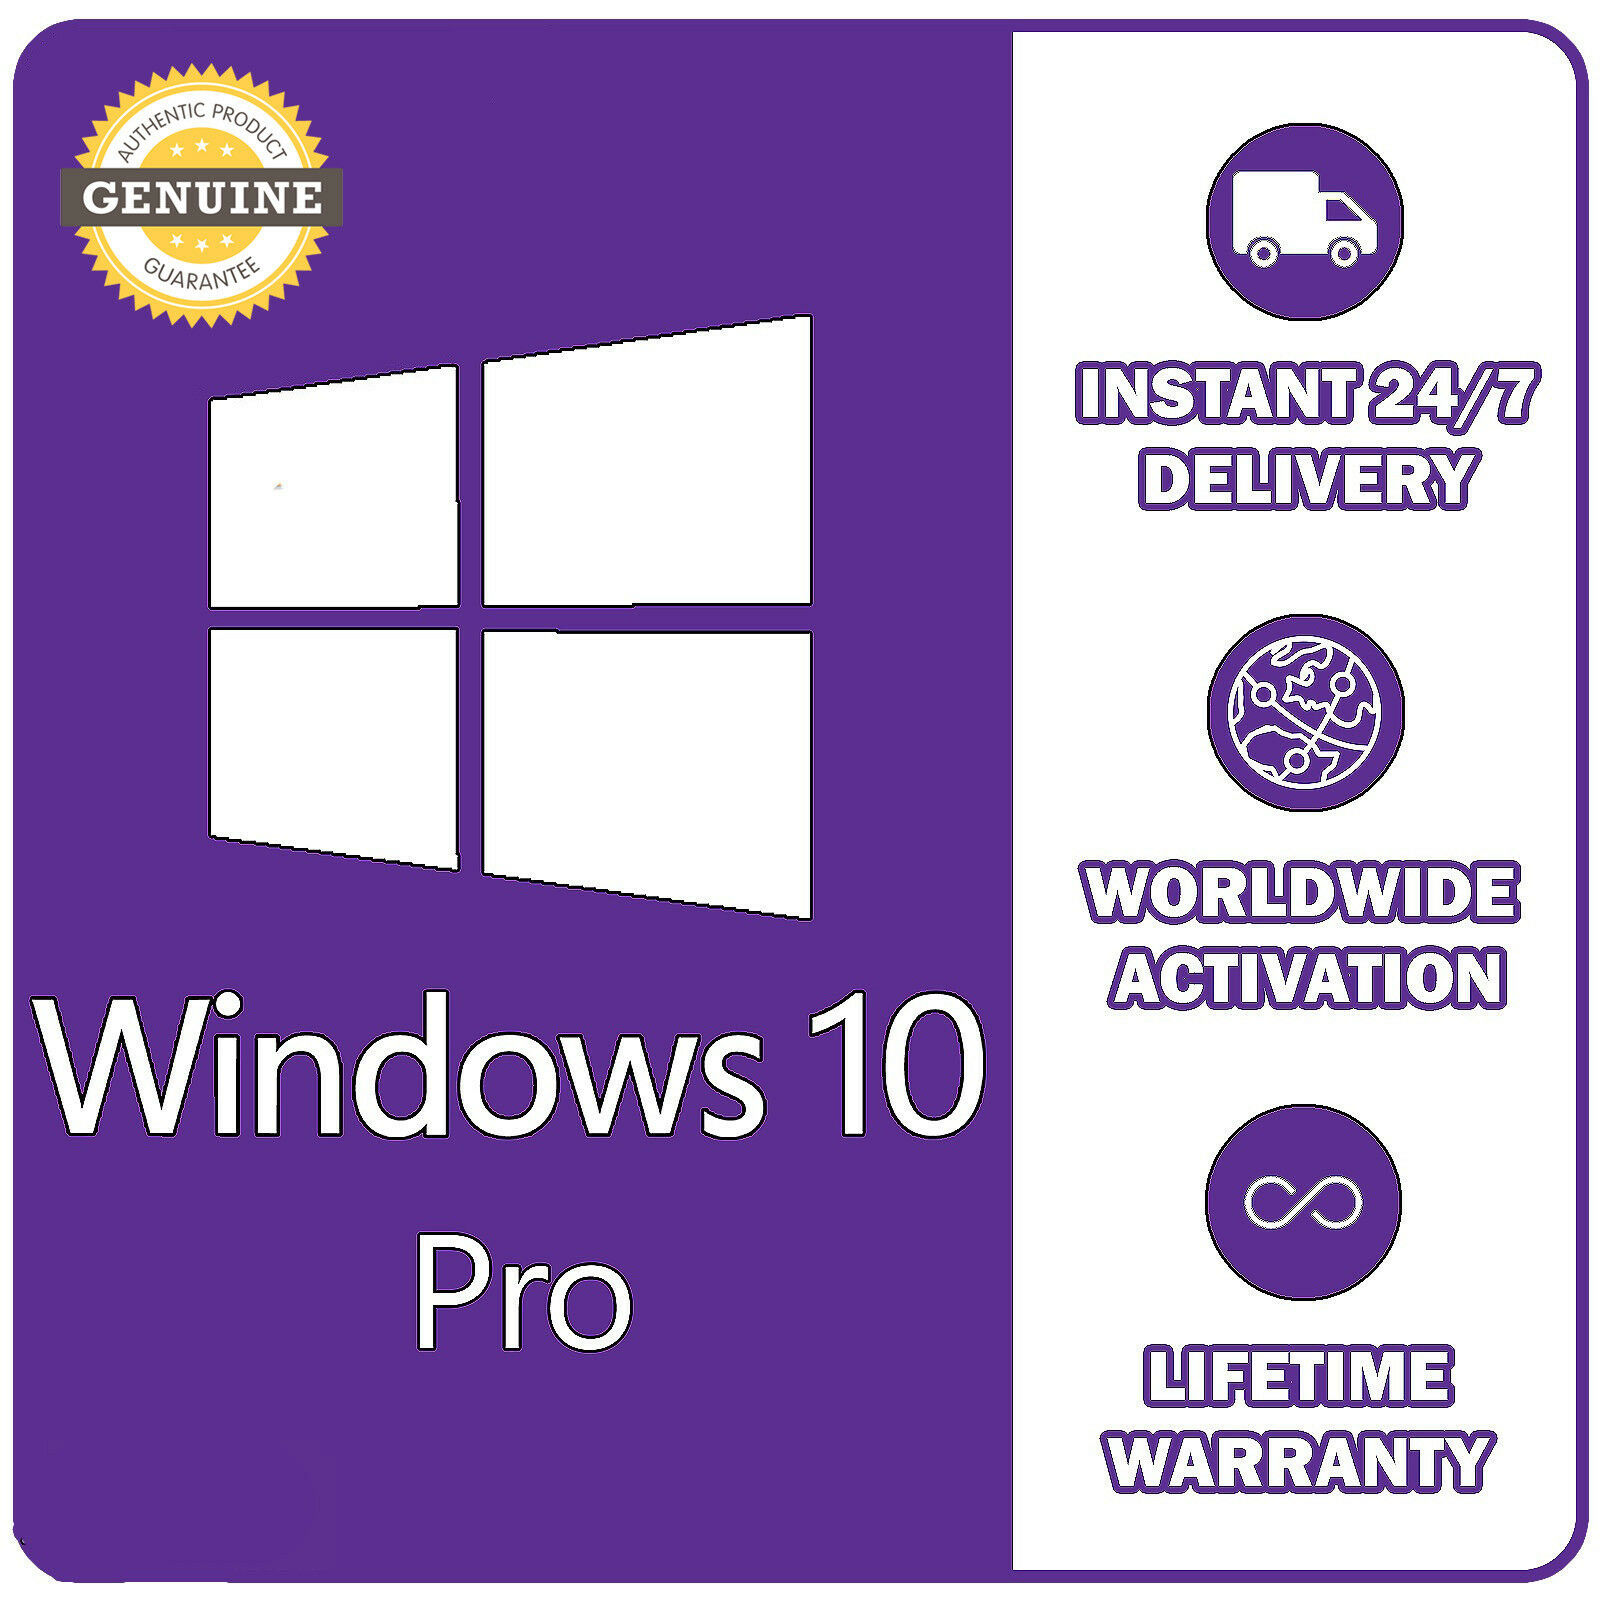 how to get genuine windows 10 for free